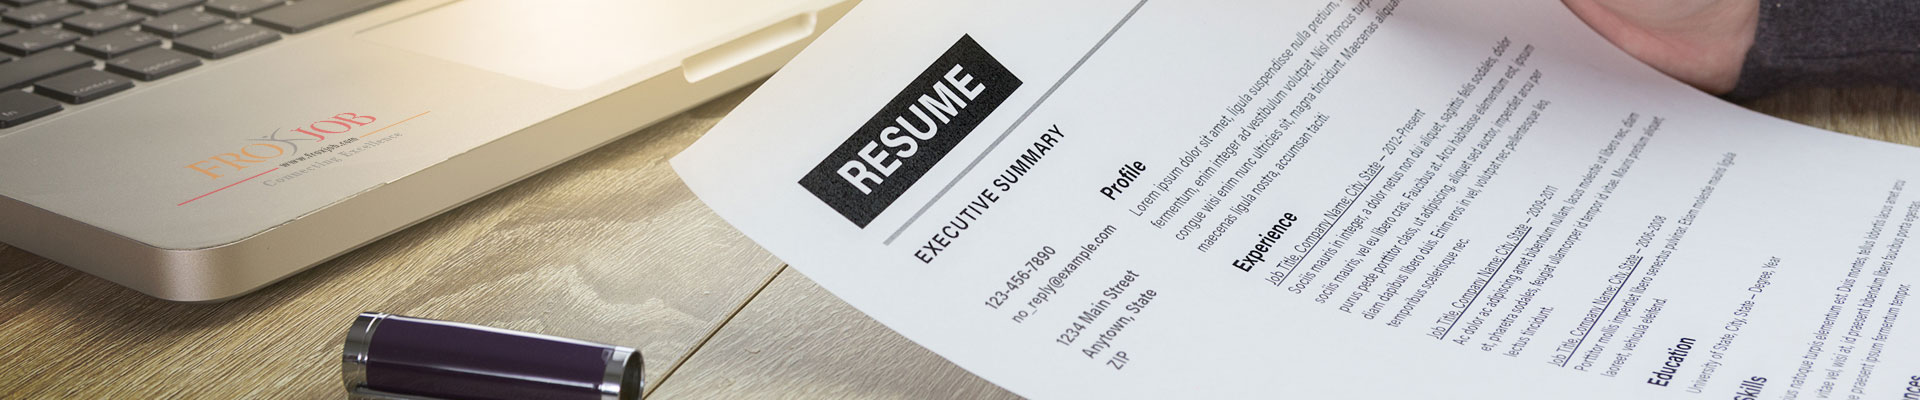 Professional CV/ Resume Writting Service